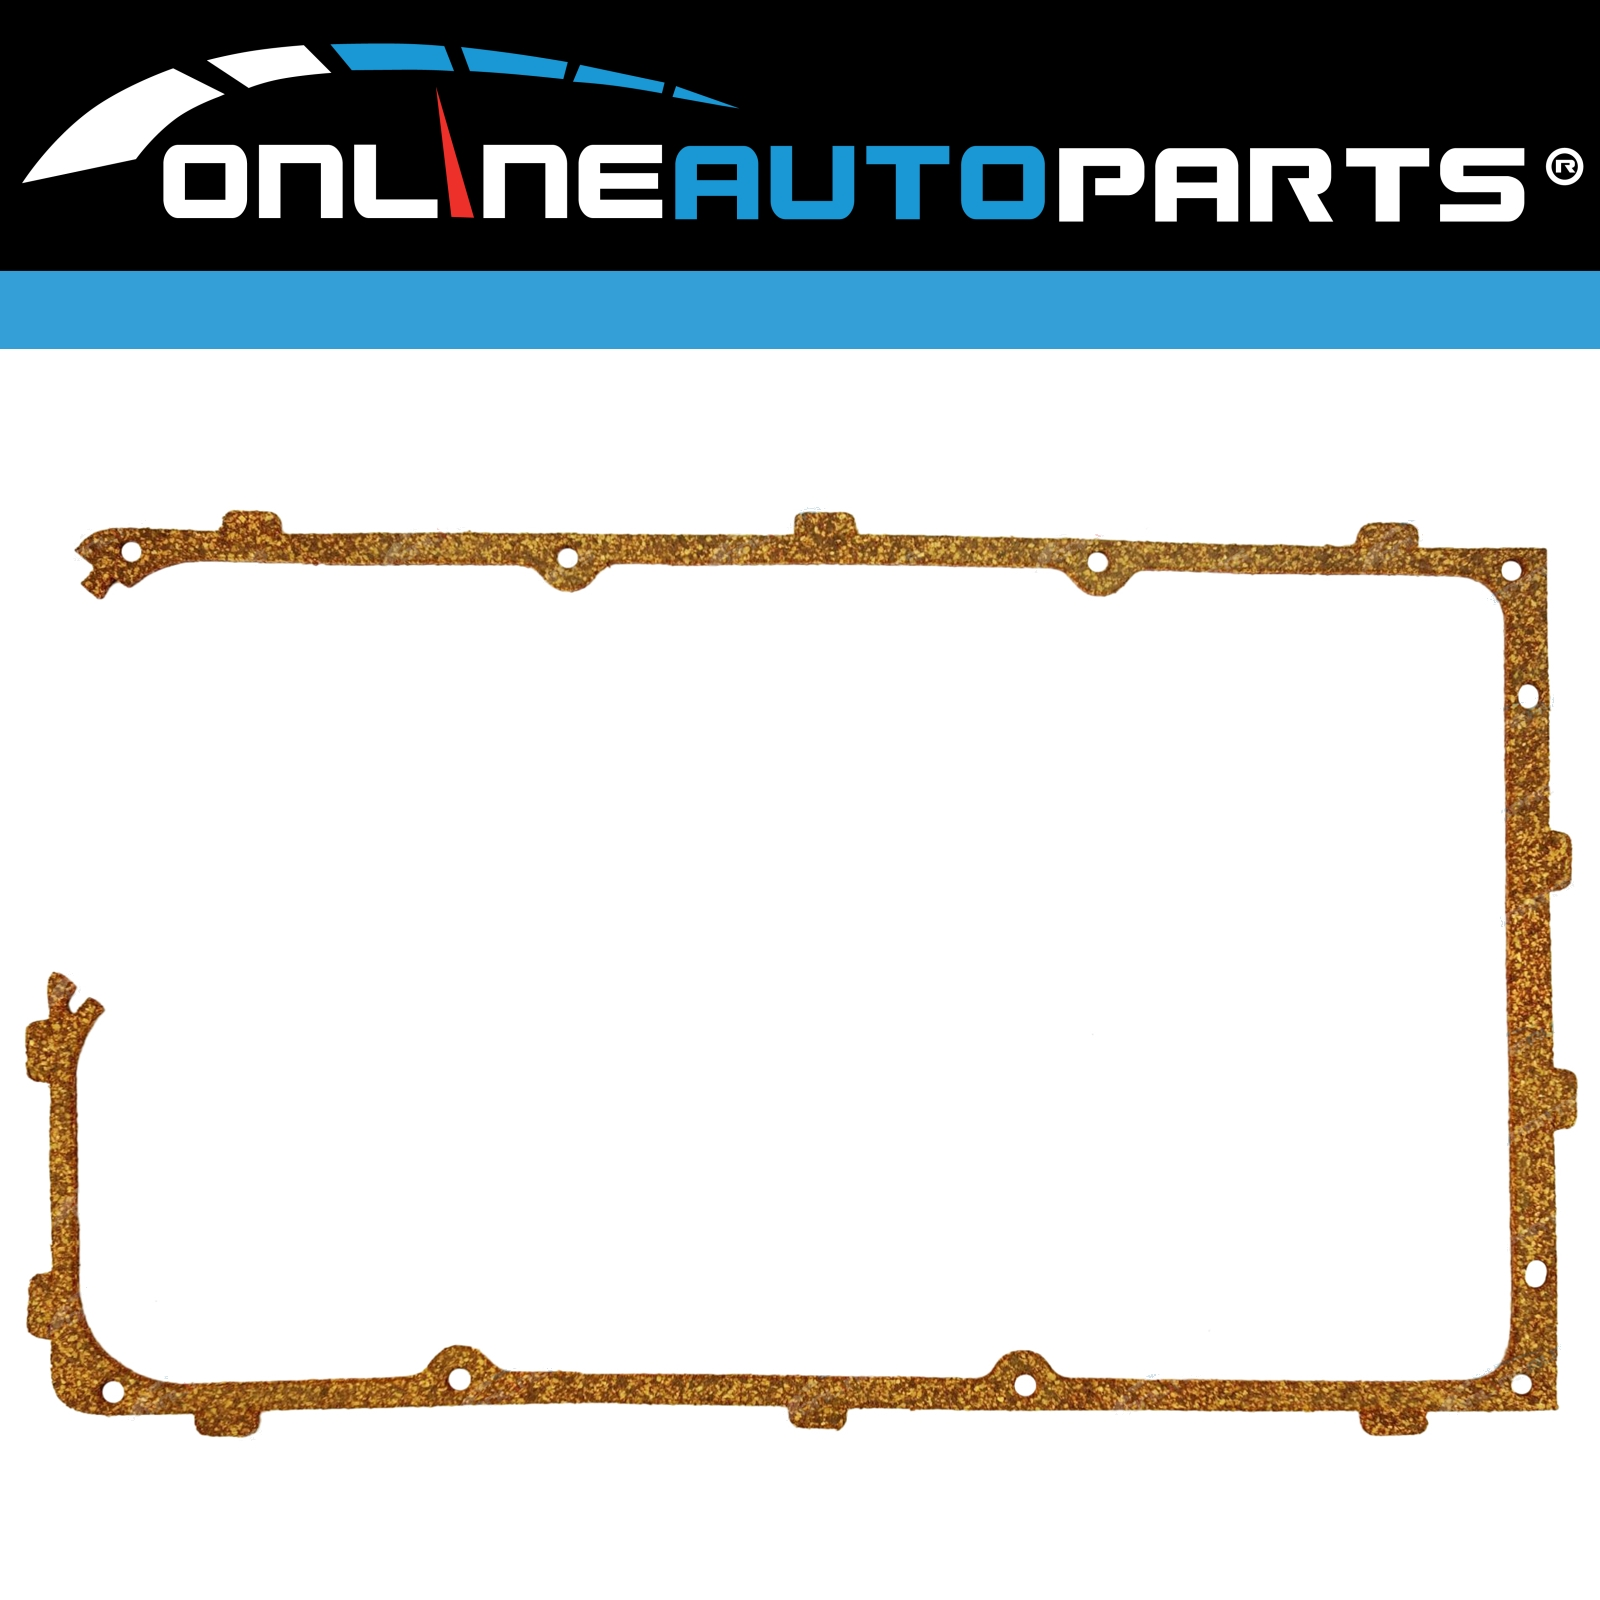 Engine Valve Covers For Ford Escort For Sale Ebay